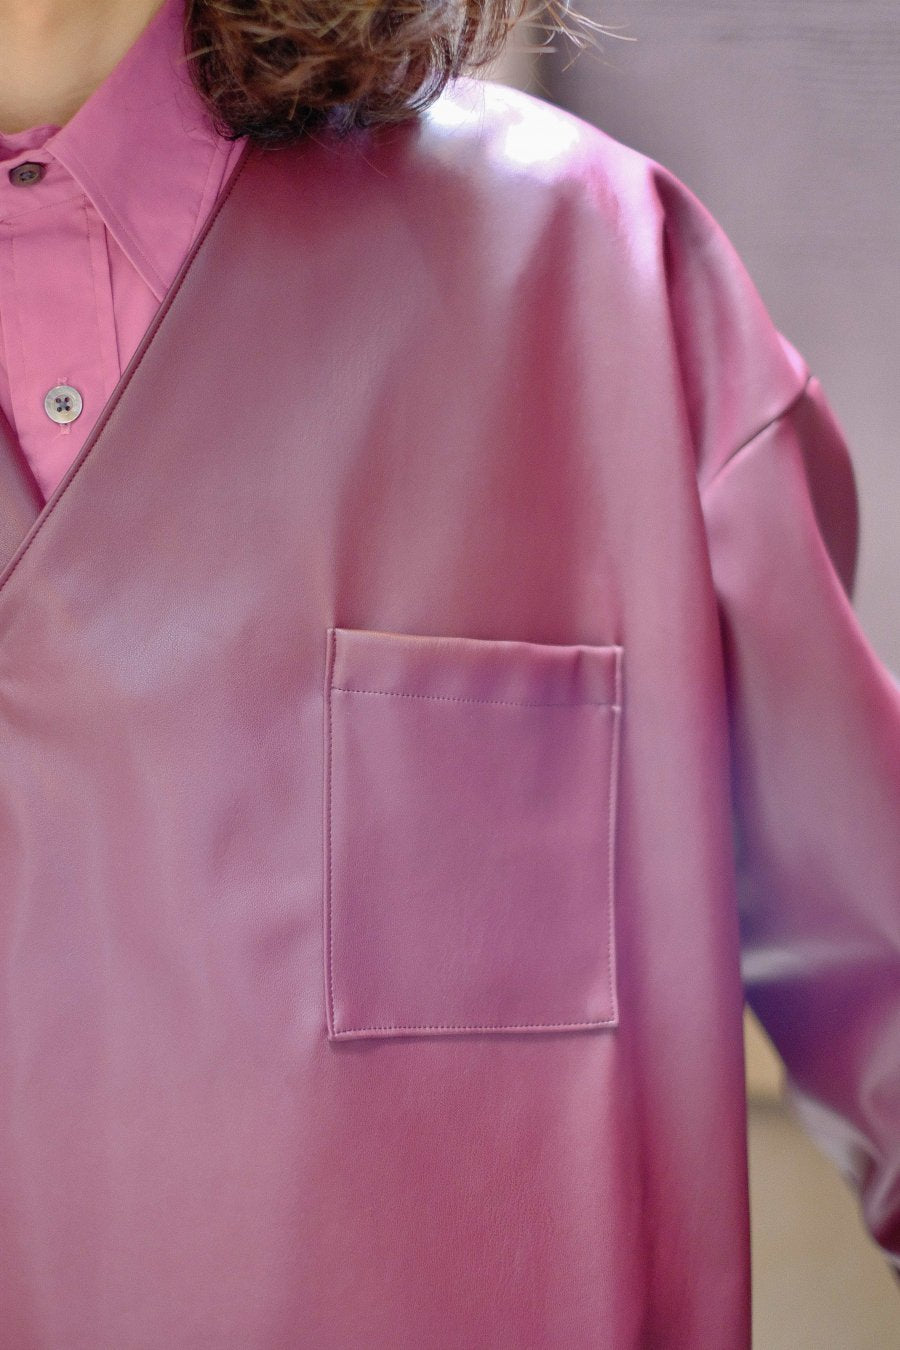 SYU.HOMME/FEMM  Nu samue shirts jkt type Eco leather to Sdgs(Wine)